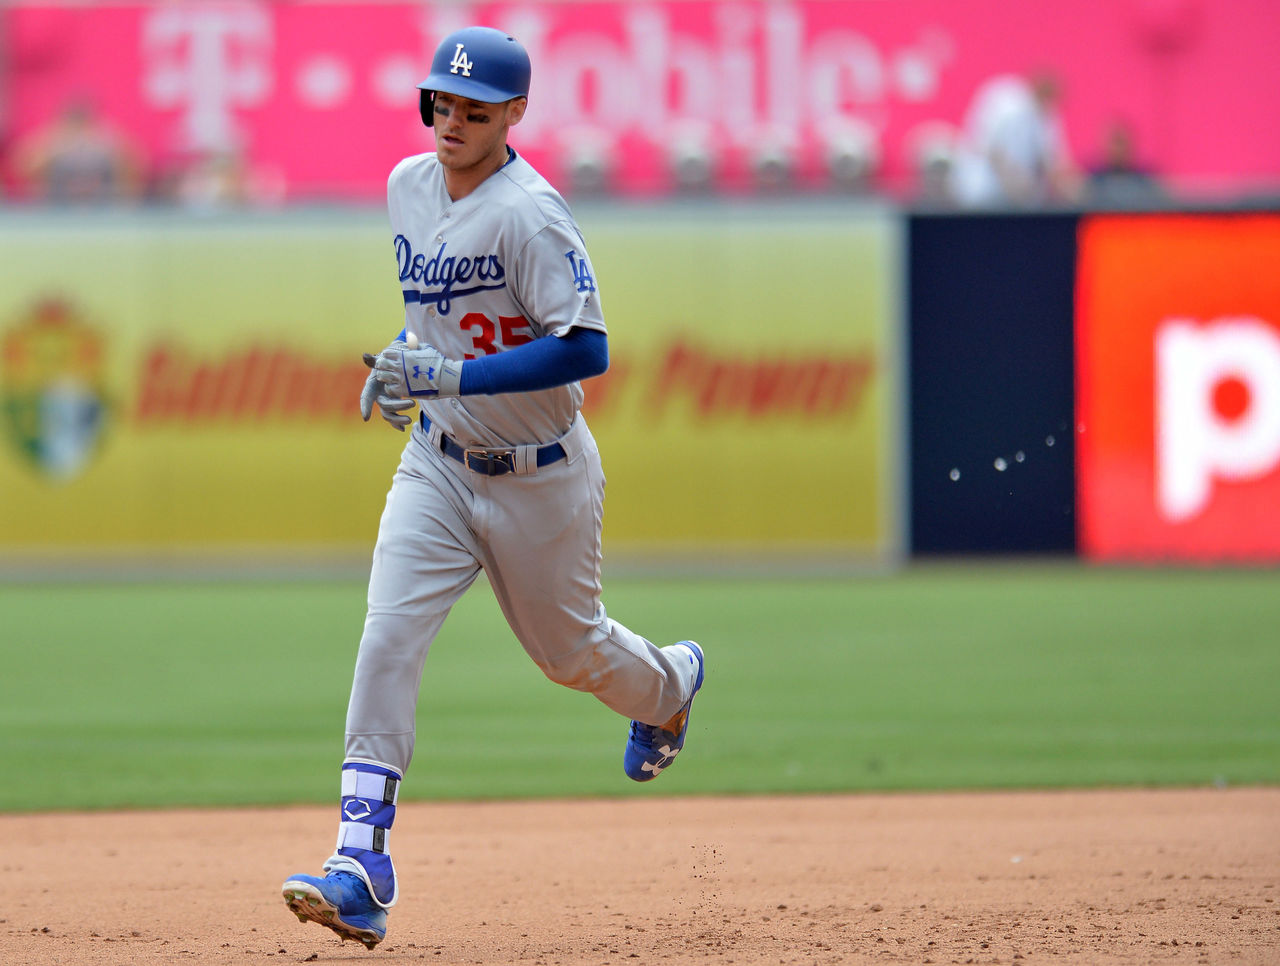 Cropped 2017 09 04t000437z 1304986406 nocid rtrmadp 3 mlb los angeles dodgers at san diego padres